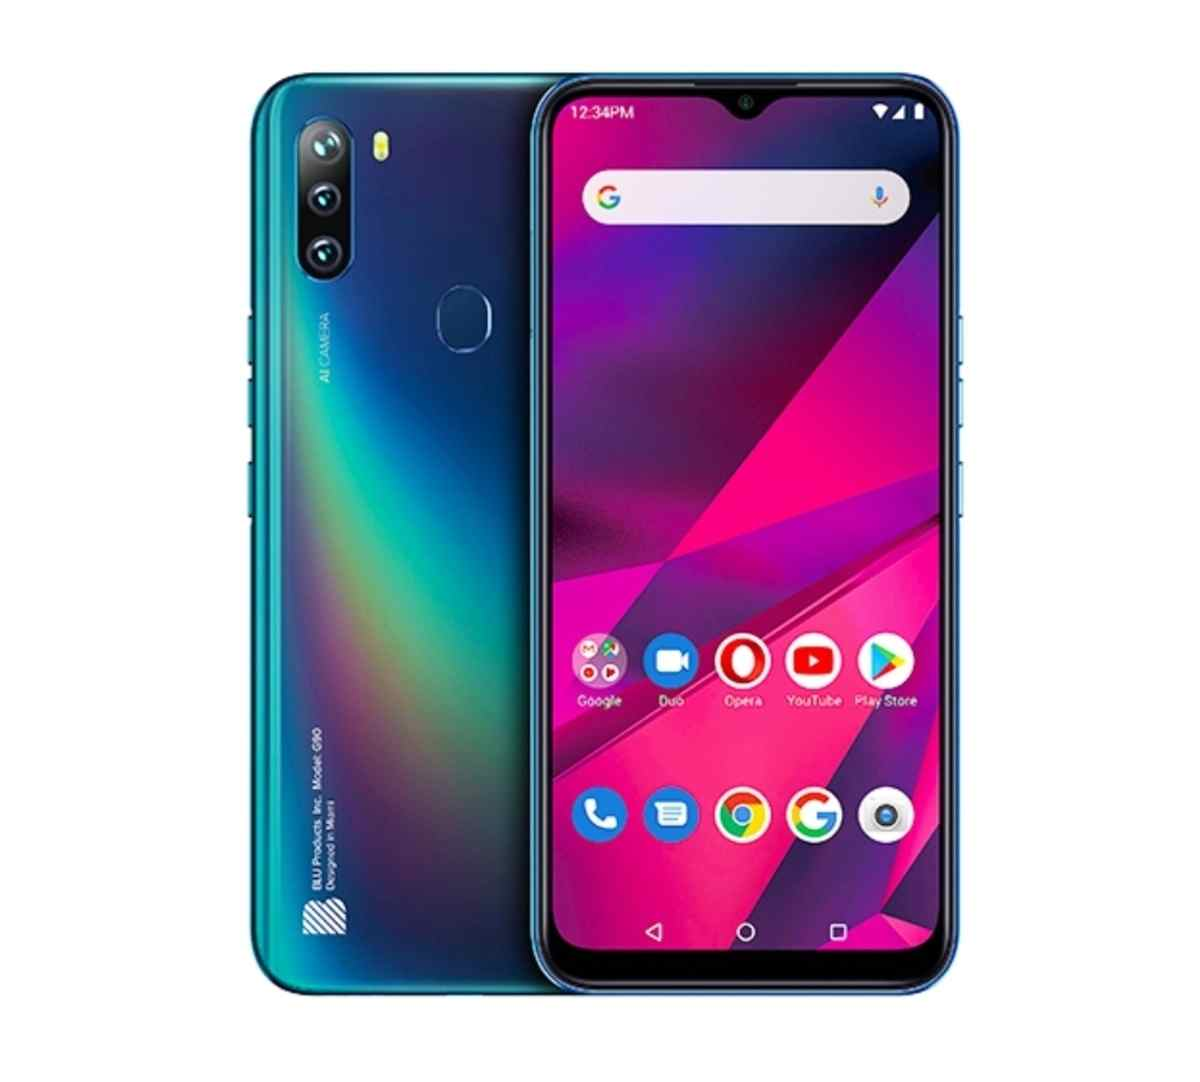 BLU G90, BLU G90 price in Nigeria, Blu G90 in USA, Blu G90 Price in united state, price of BLU G90 in USA, Nigeria, india, BLU G90 specs and price, how much is Blu G90, BLU G90 full specifications, Blu g90 price, Blu G90 specs, Blu G90 in Nigeria and price, Blu Phones in Nigeria